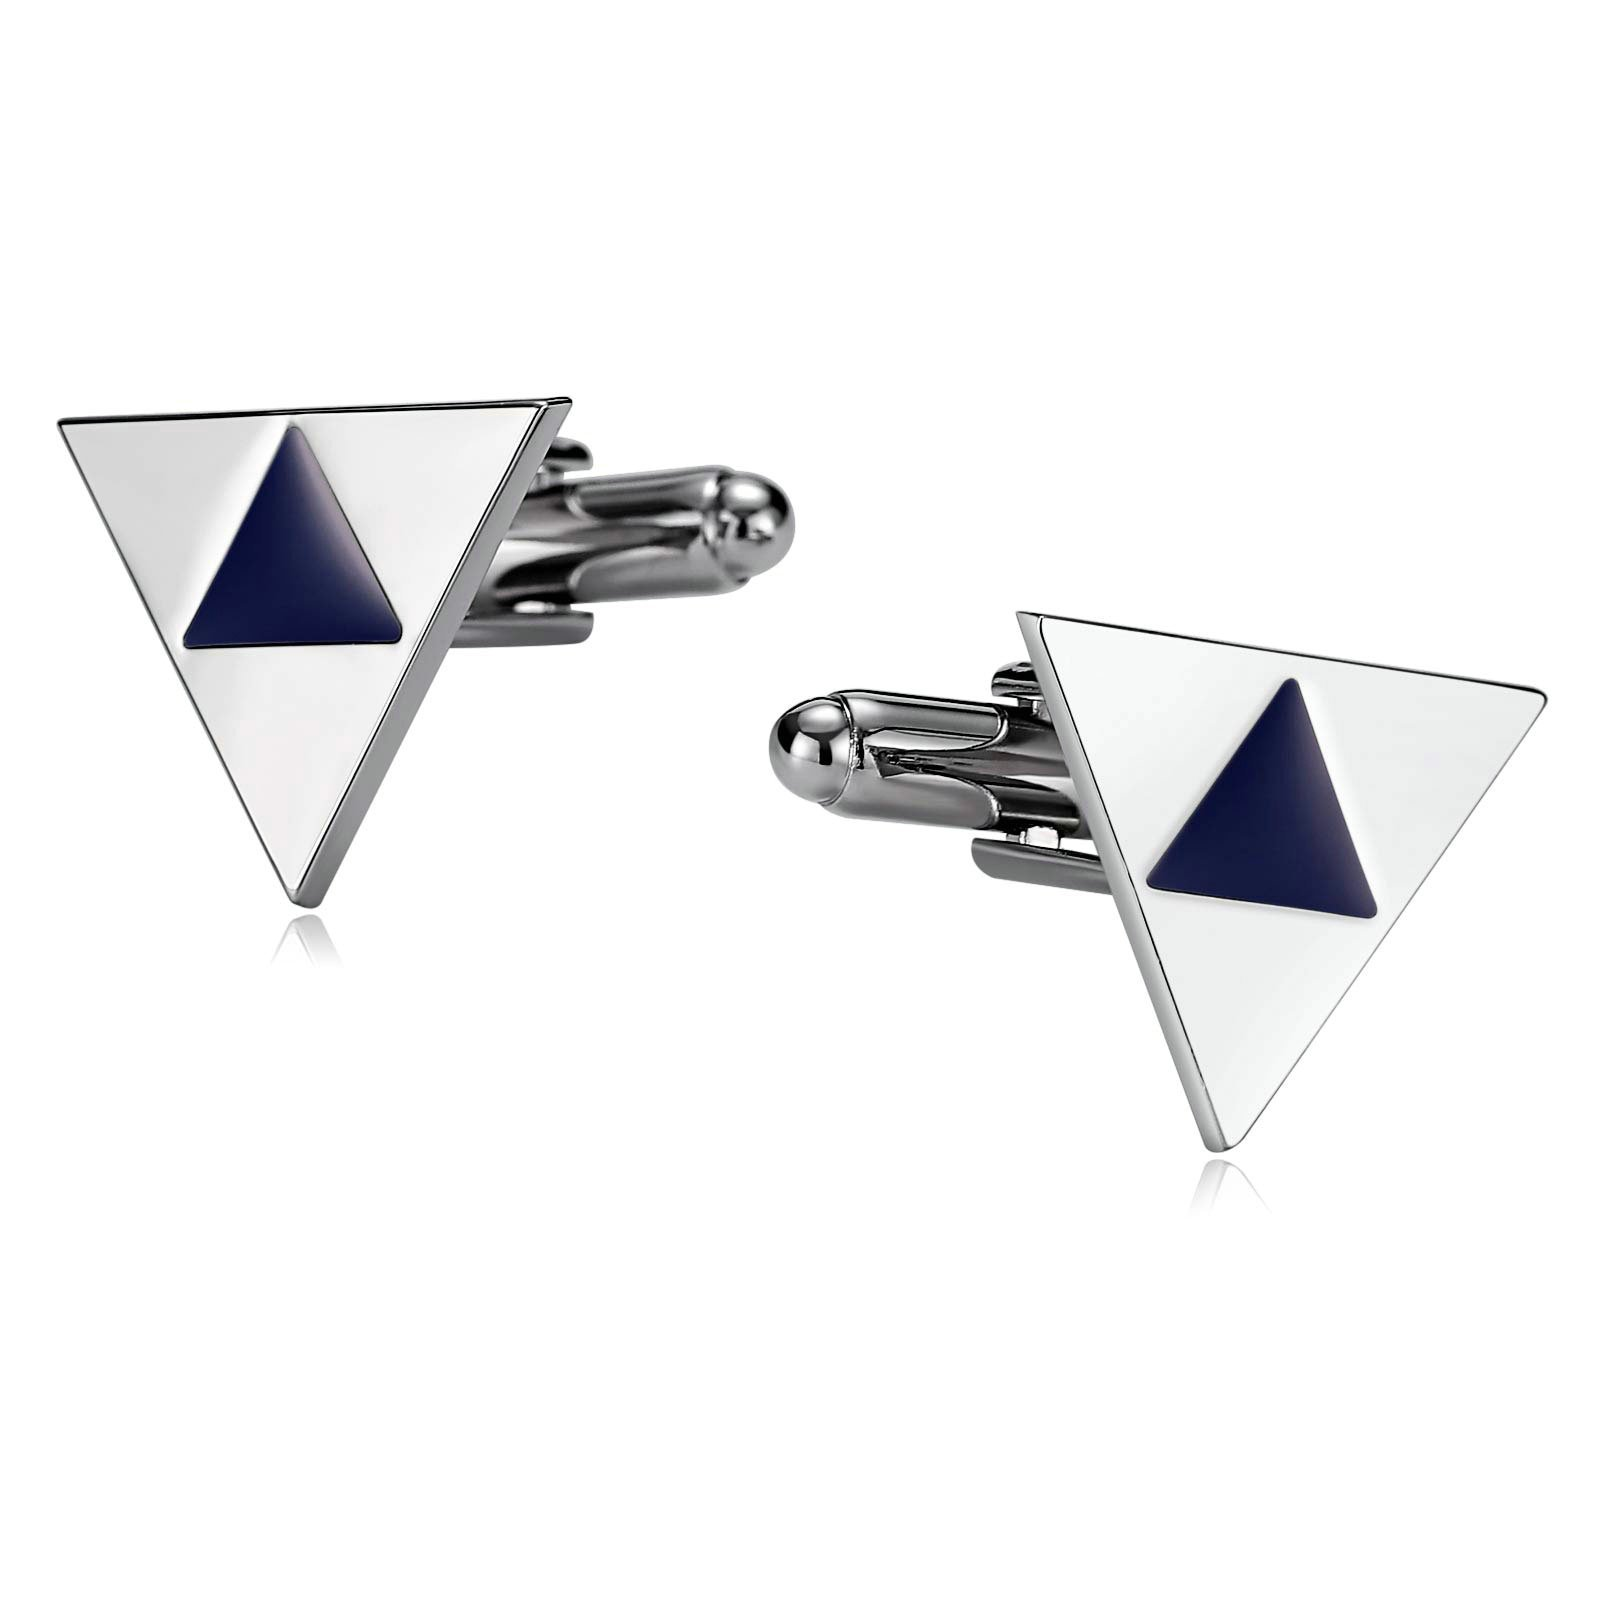 Gnzoe Cufflink Wedding-Men's Stainless Steel Triangle Enamel Cuff Links Silver Blue